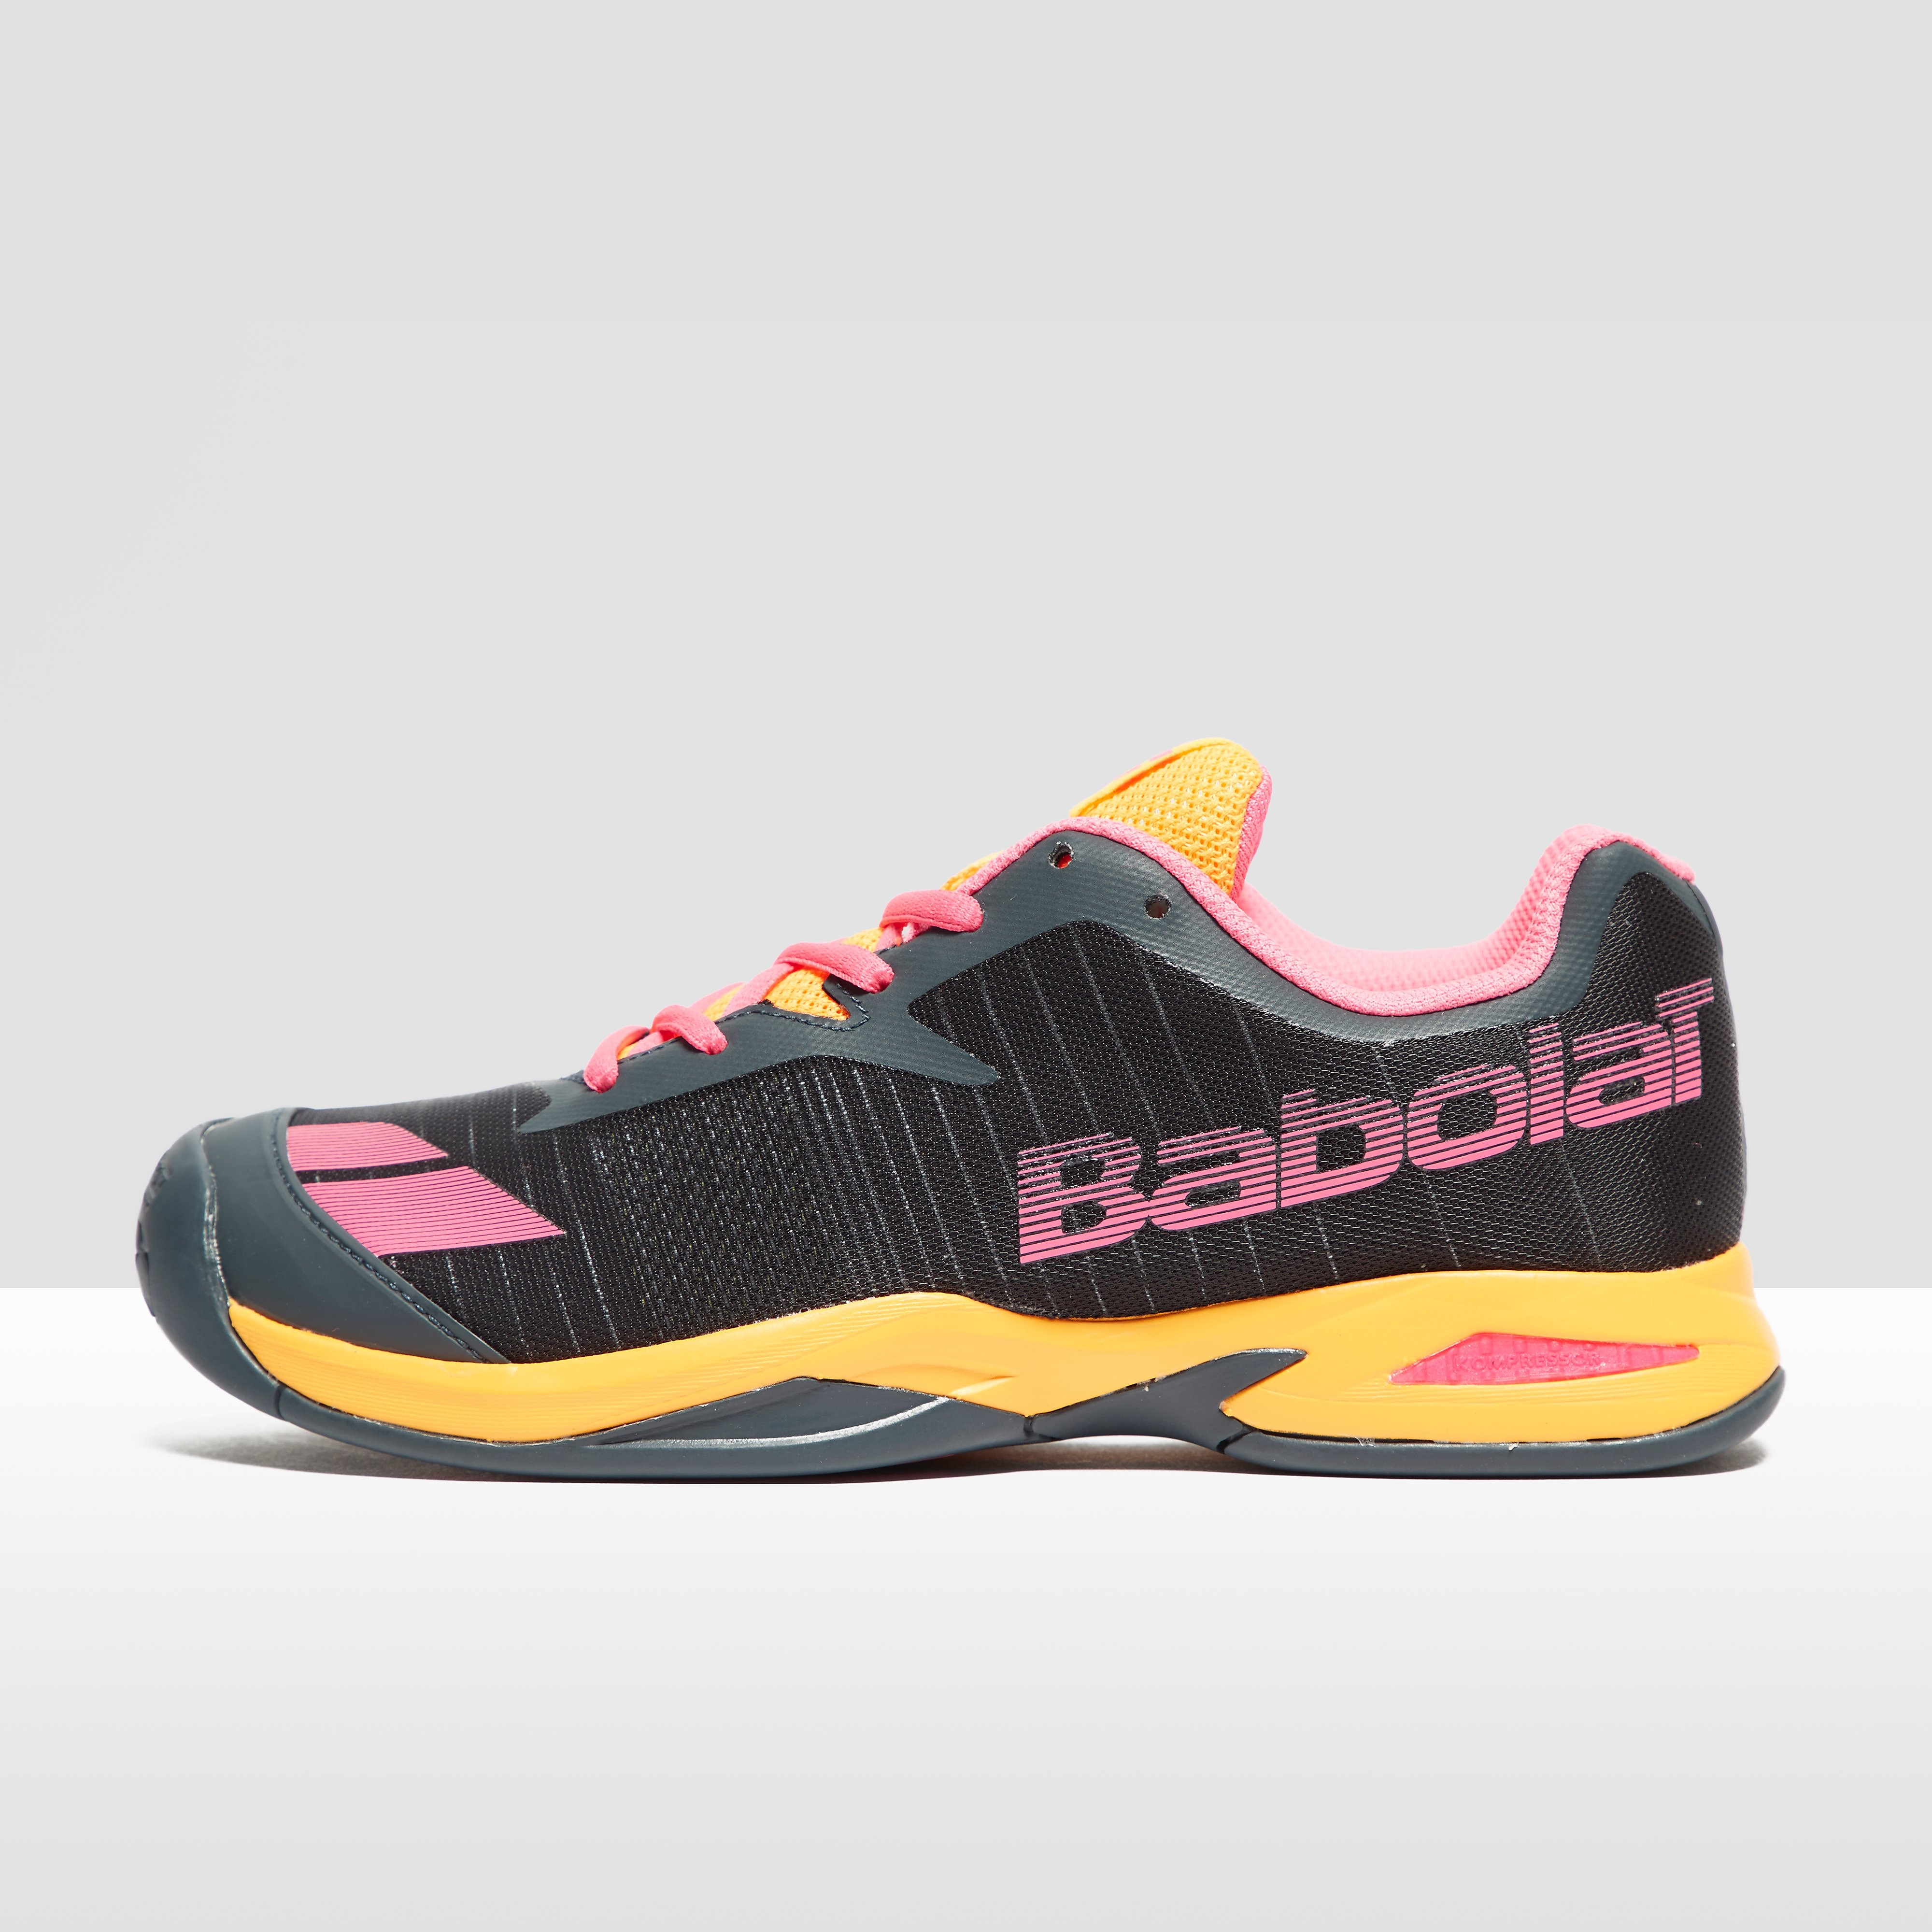 Babolat Jet All-Court Junior Tennis Shoes